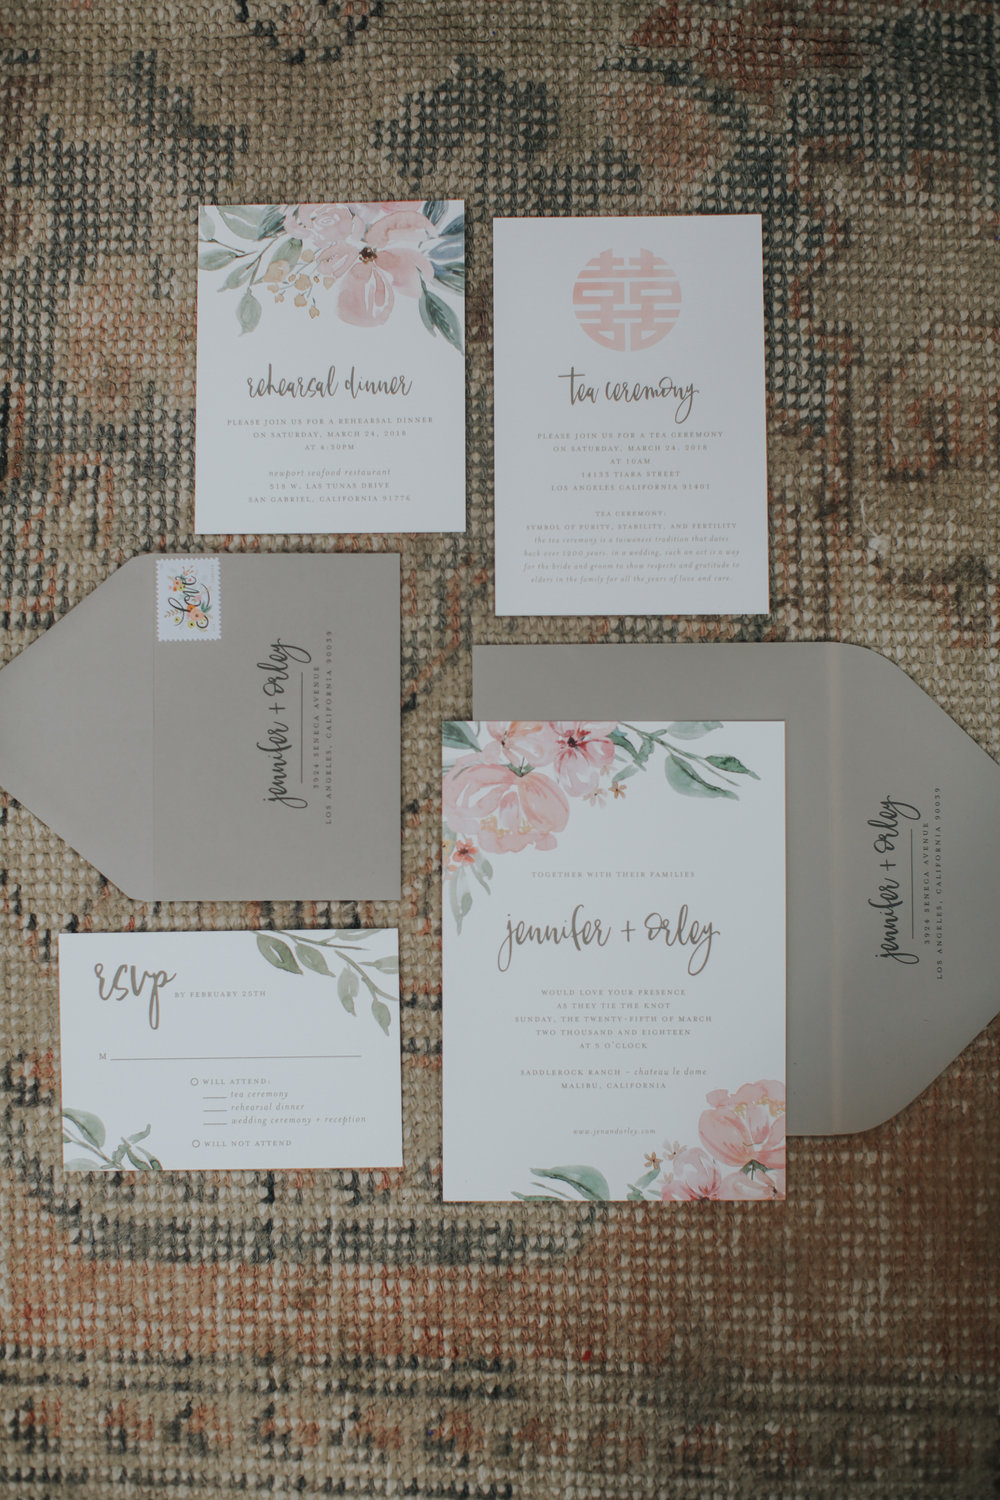 Custom floral wedding invitations, shabby chic wedding invitations, Los Angeles wedding     Orange Blossom Special Events